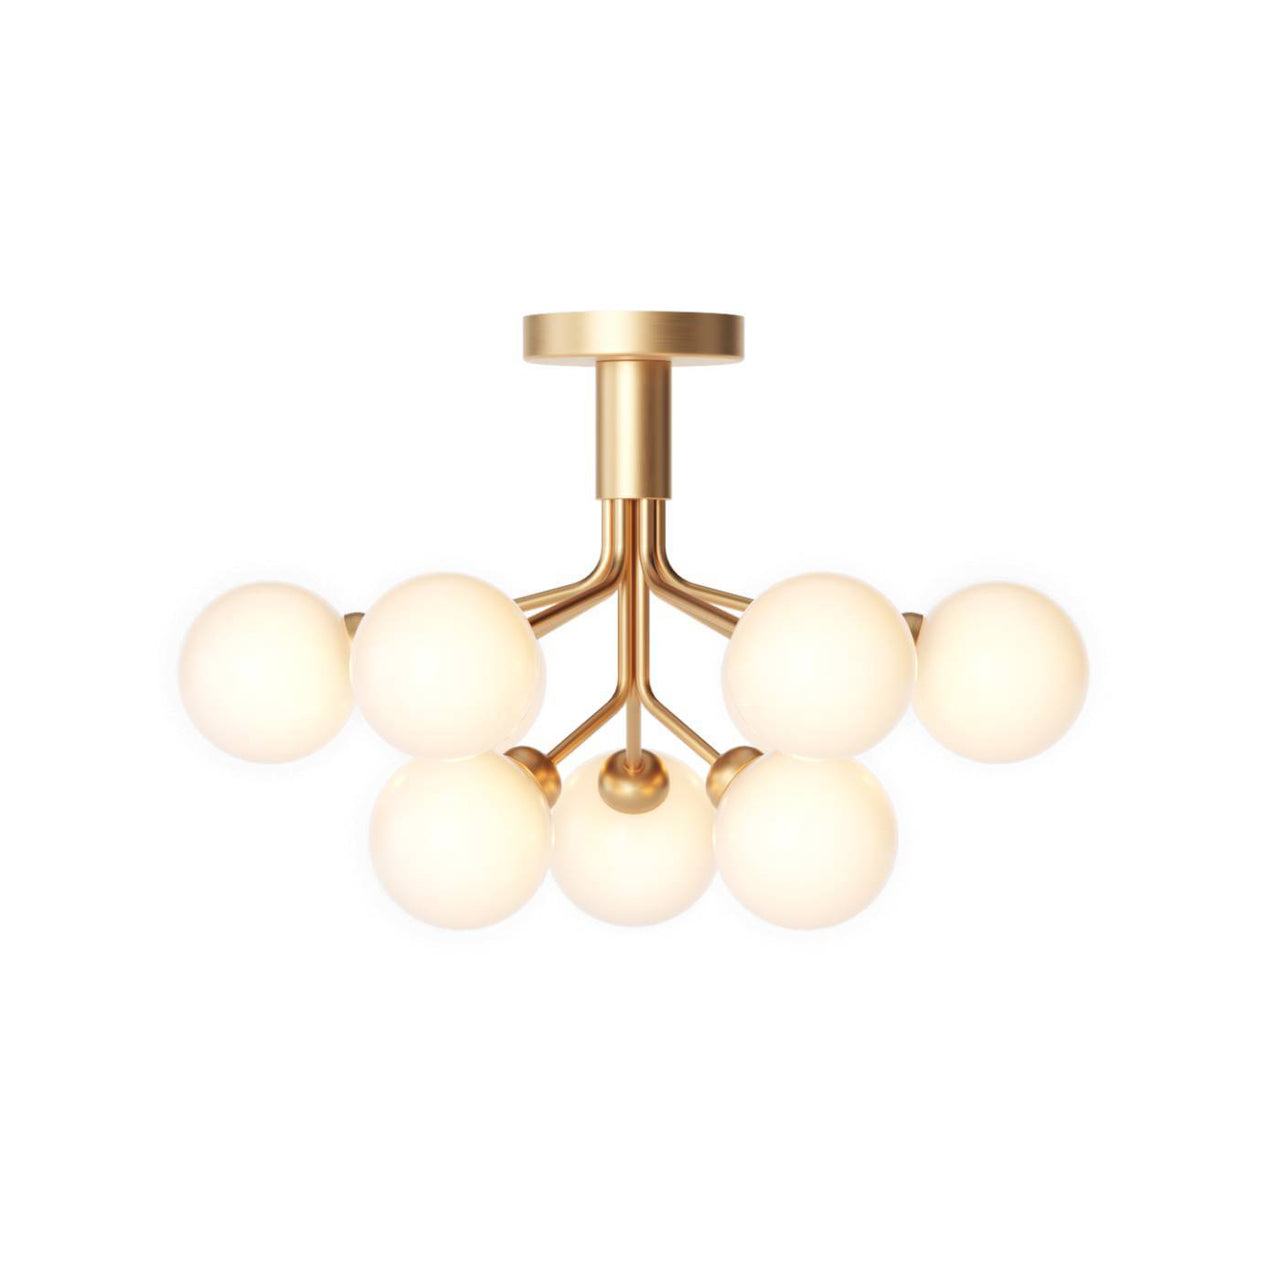 Apiales 9 Ceiling: Brushed Brass